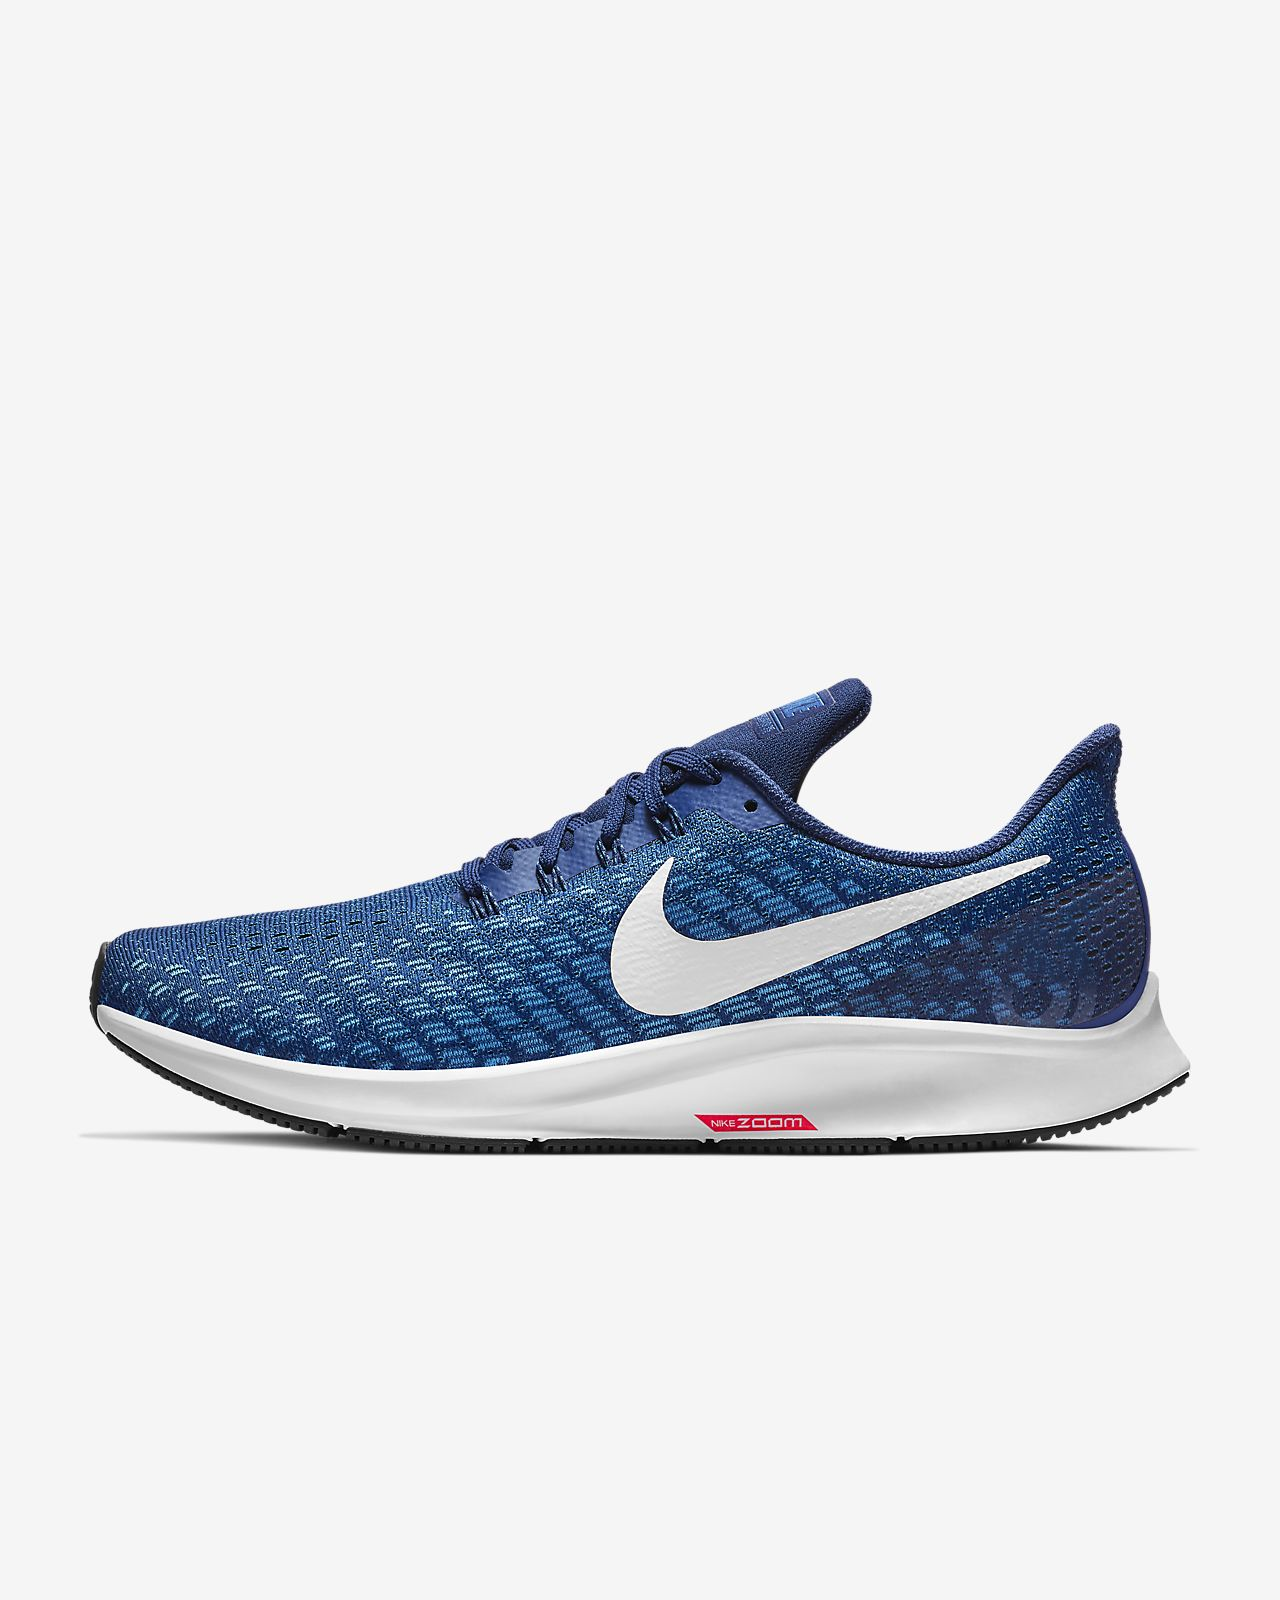 b74e14235f579 Nike Air Zoom Pegasus 35 Men s Running Shoe. Nike.com CA